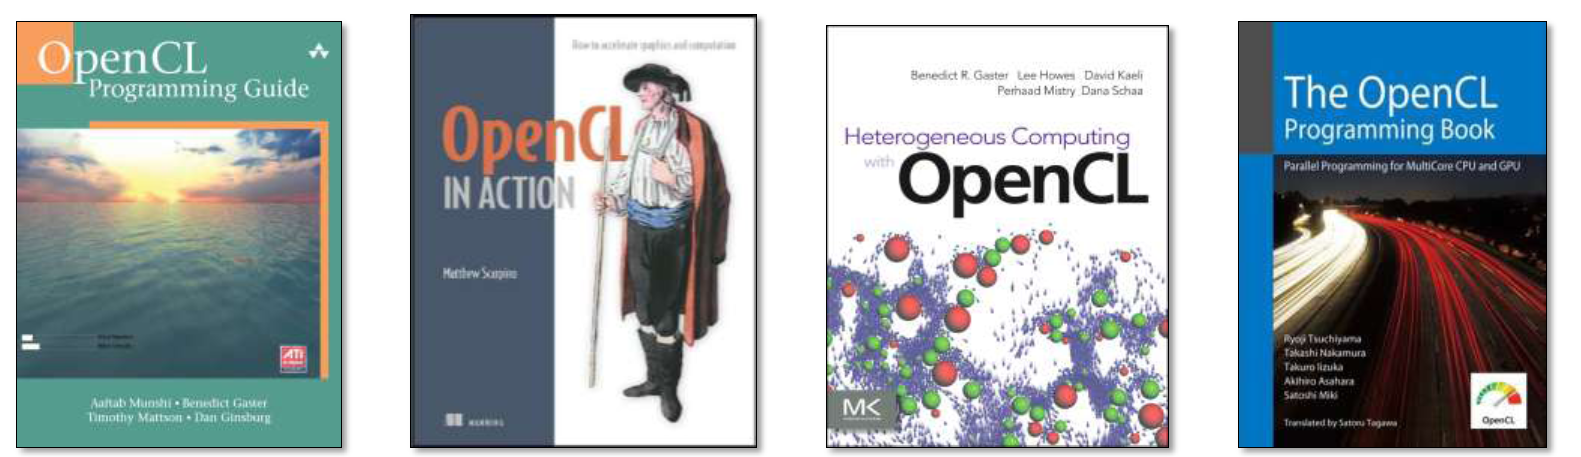 OpenCL könyvek OpenCL Programming Guide - The Red Book of OpenCL http://www.amazon.com/opencl-programming-guide-aaftab-munshi/dp/0321749642 OpenCL in Action http://www.amazon.com/opencl-action-accelerate-graphics-computations/dp/1617290173/ Heterogeneous Computing with OpenCL http://www.